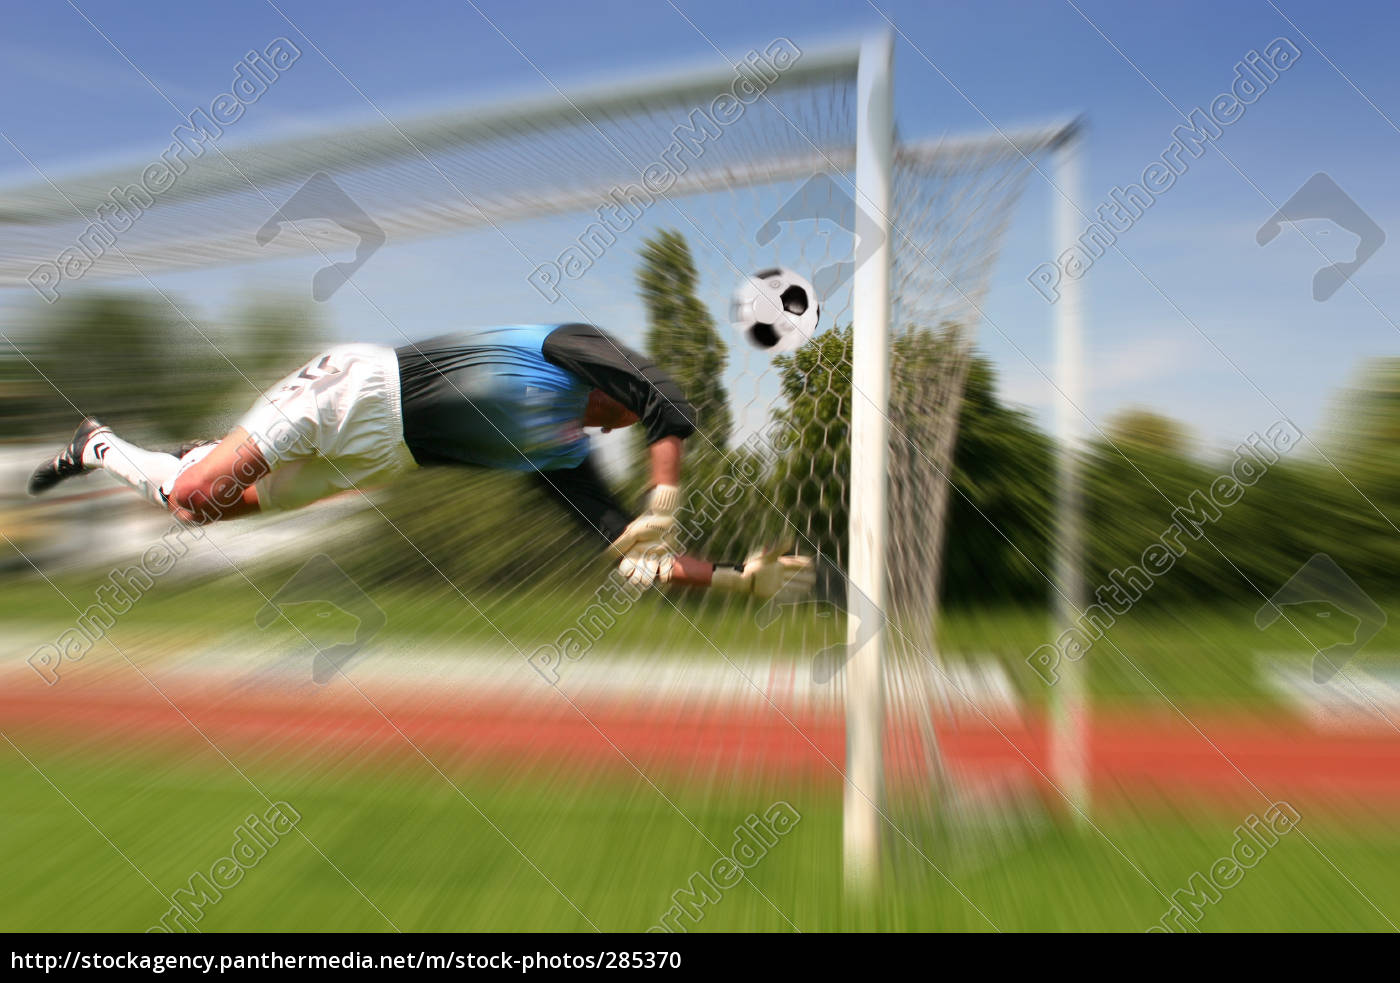 goalkeeper, in, action - 285370